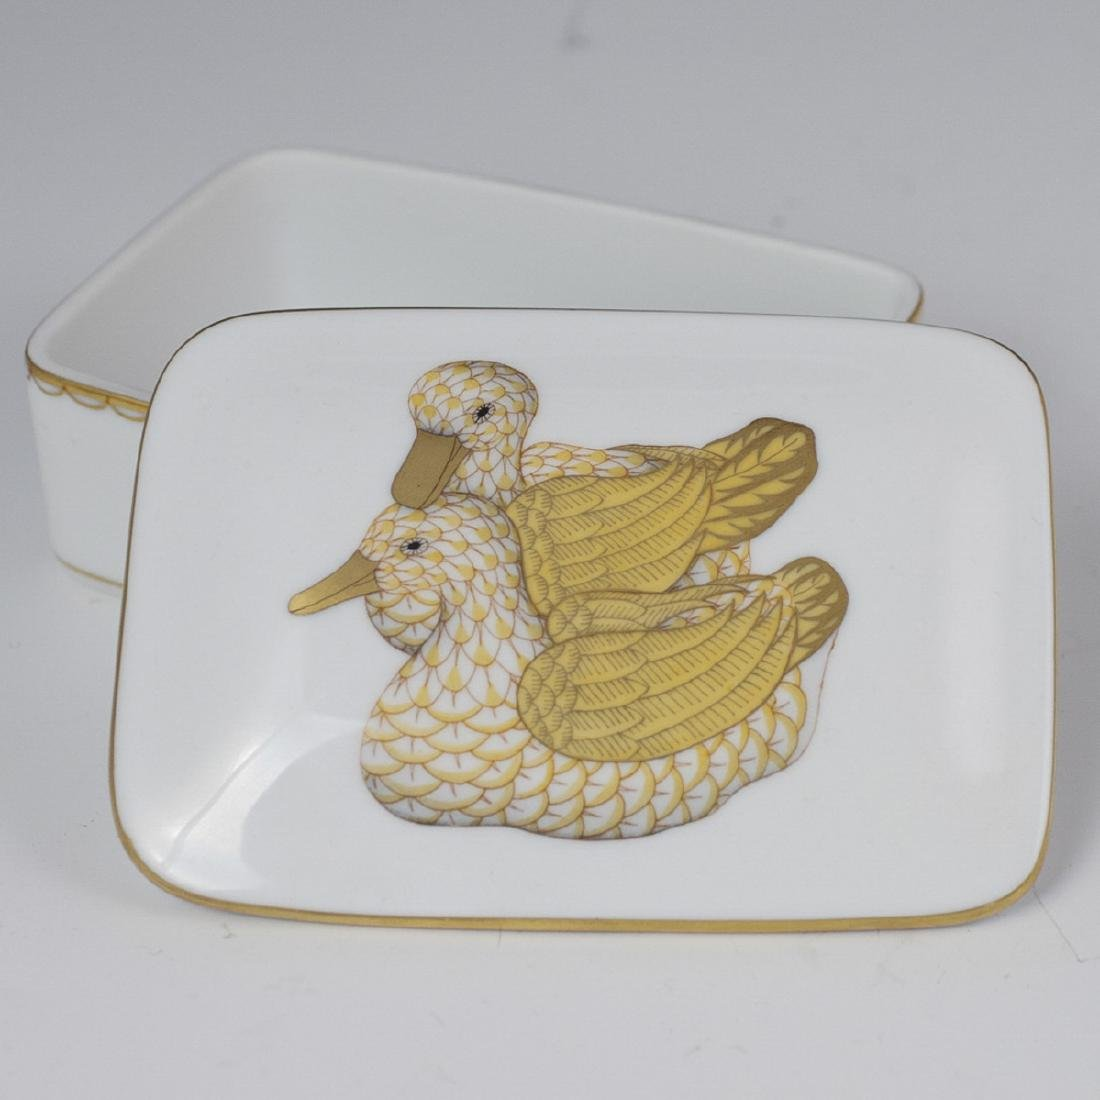 Herend Porcelain Trinket Box